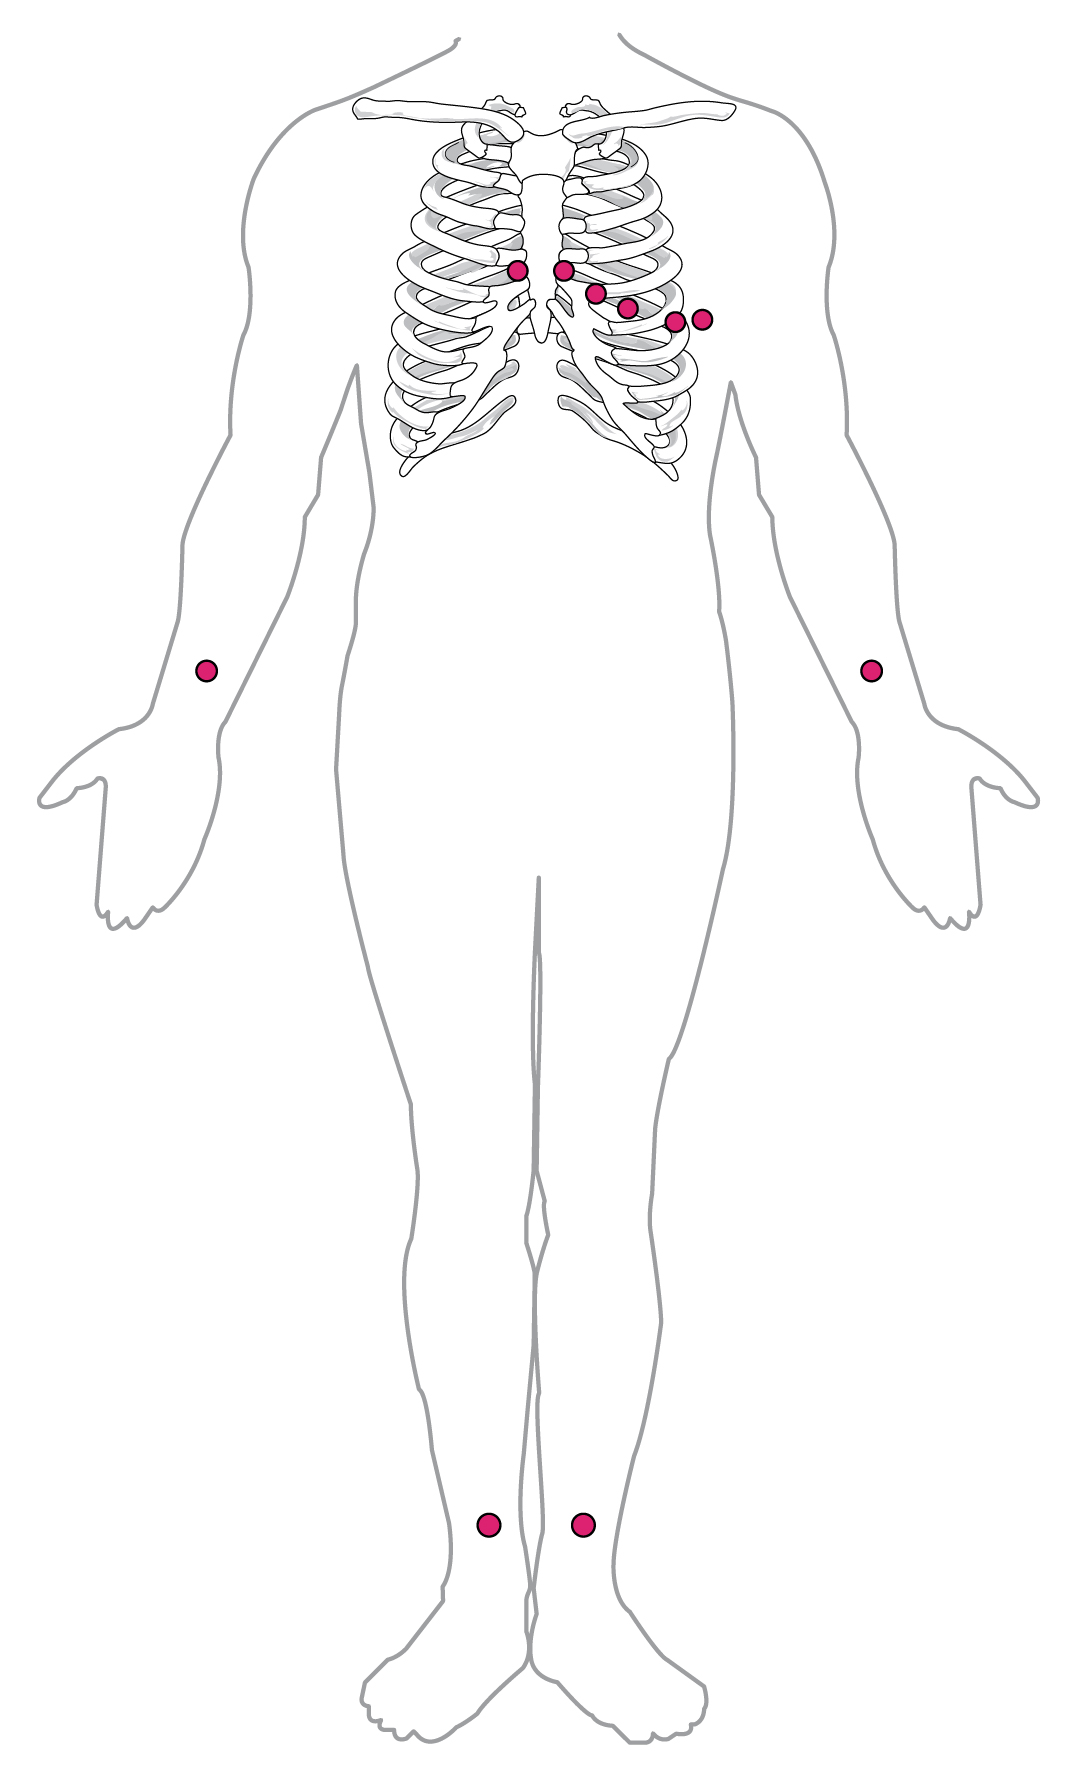 Electrode Ecg Placement